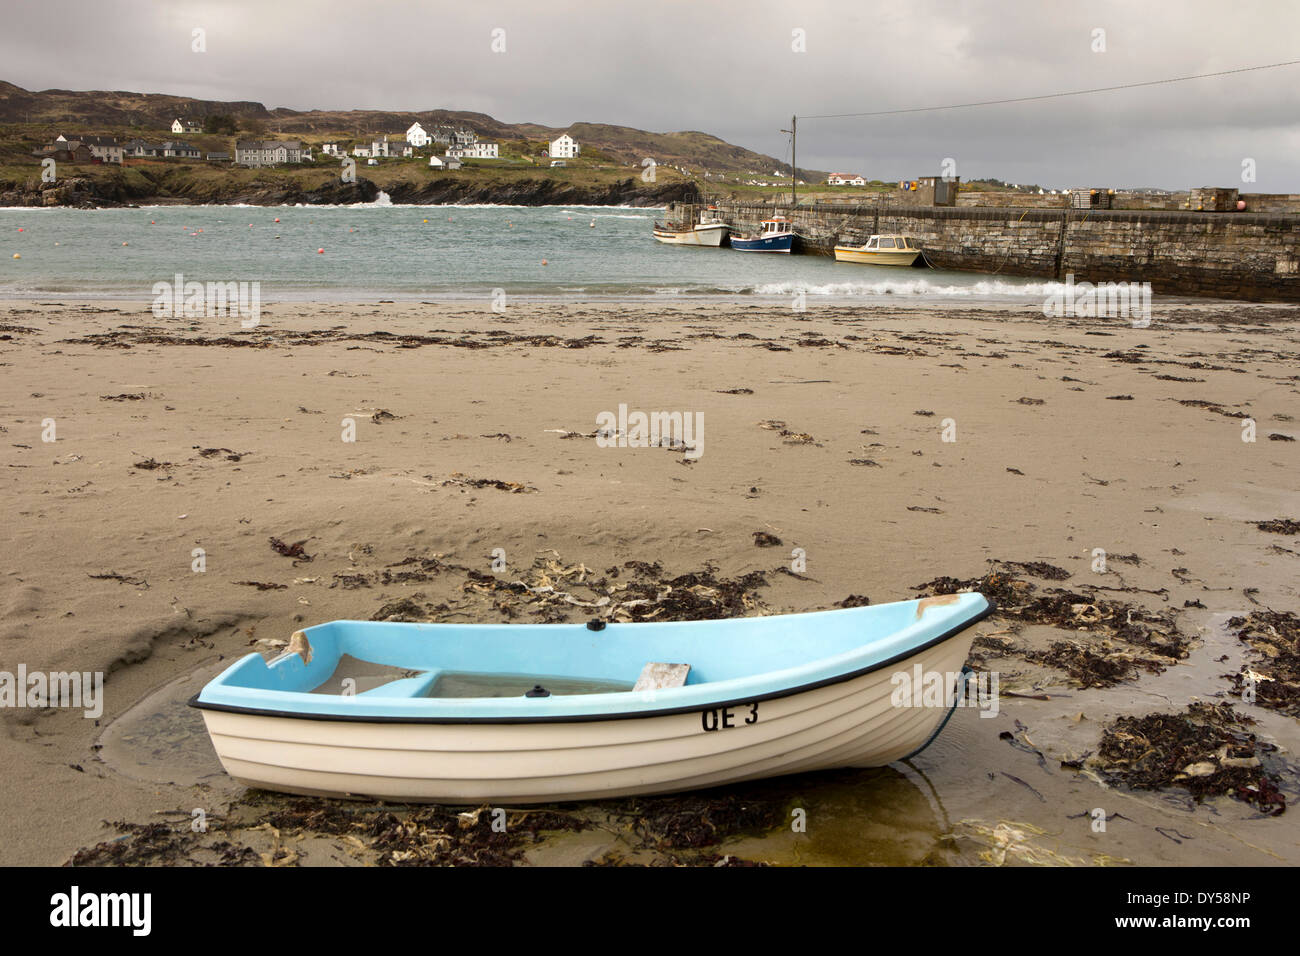 Ireland, Co Donegal, Dunfanaghy, boats in the harbour - Stock Image